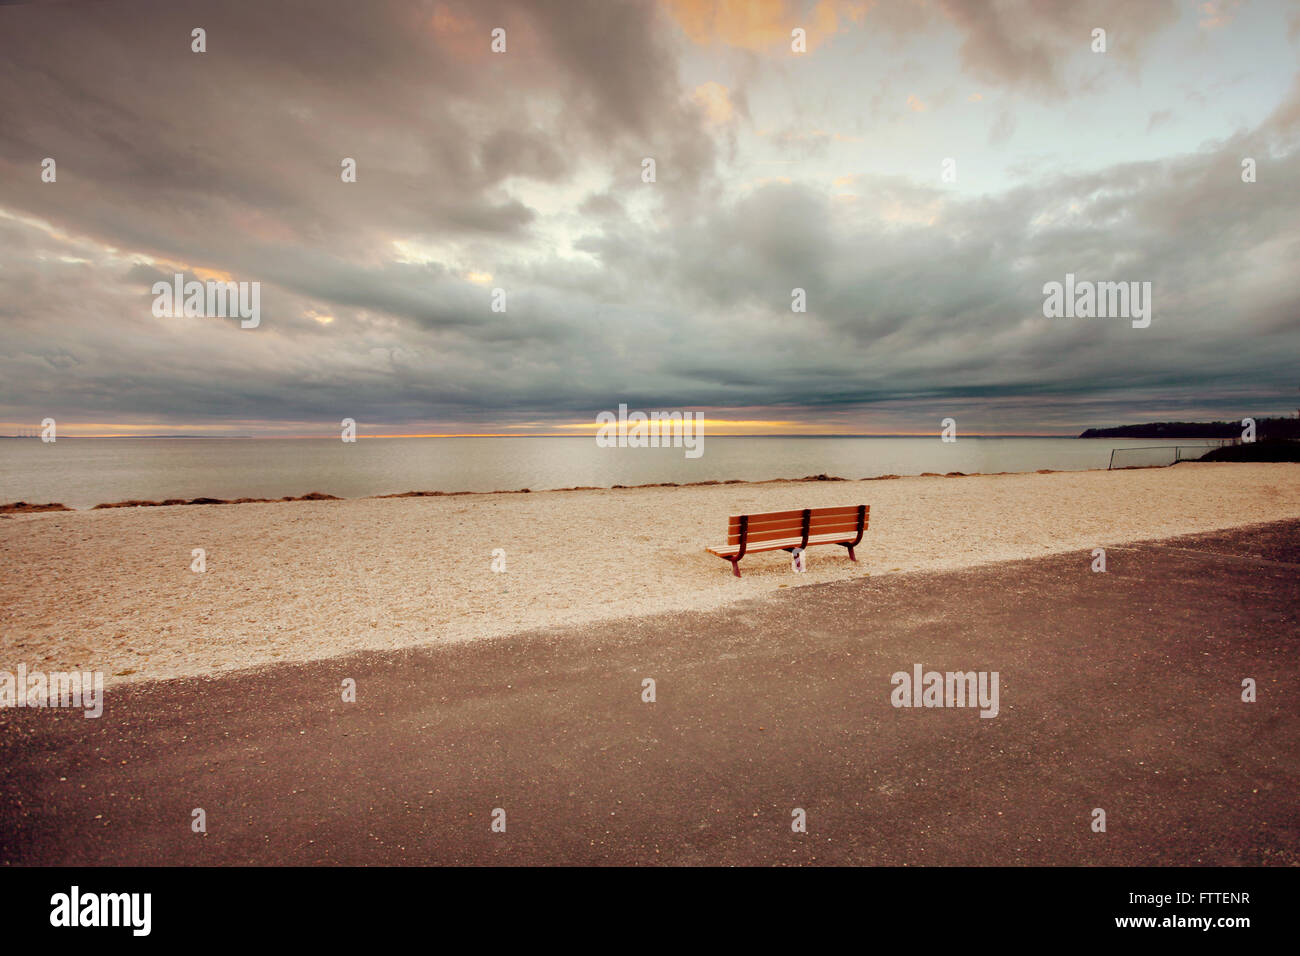 Leere Bank am Strand Stockfoto